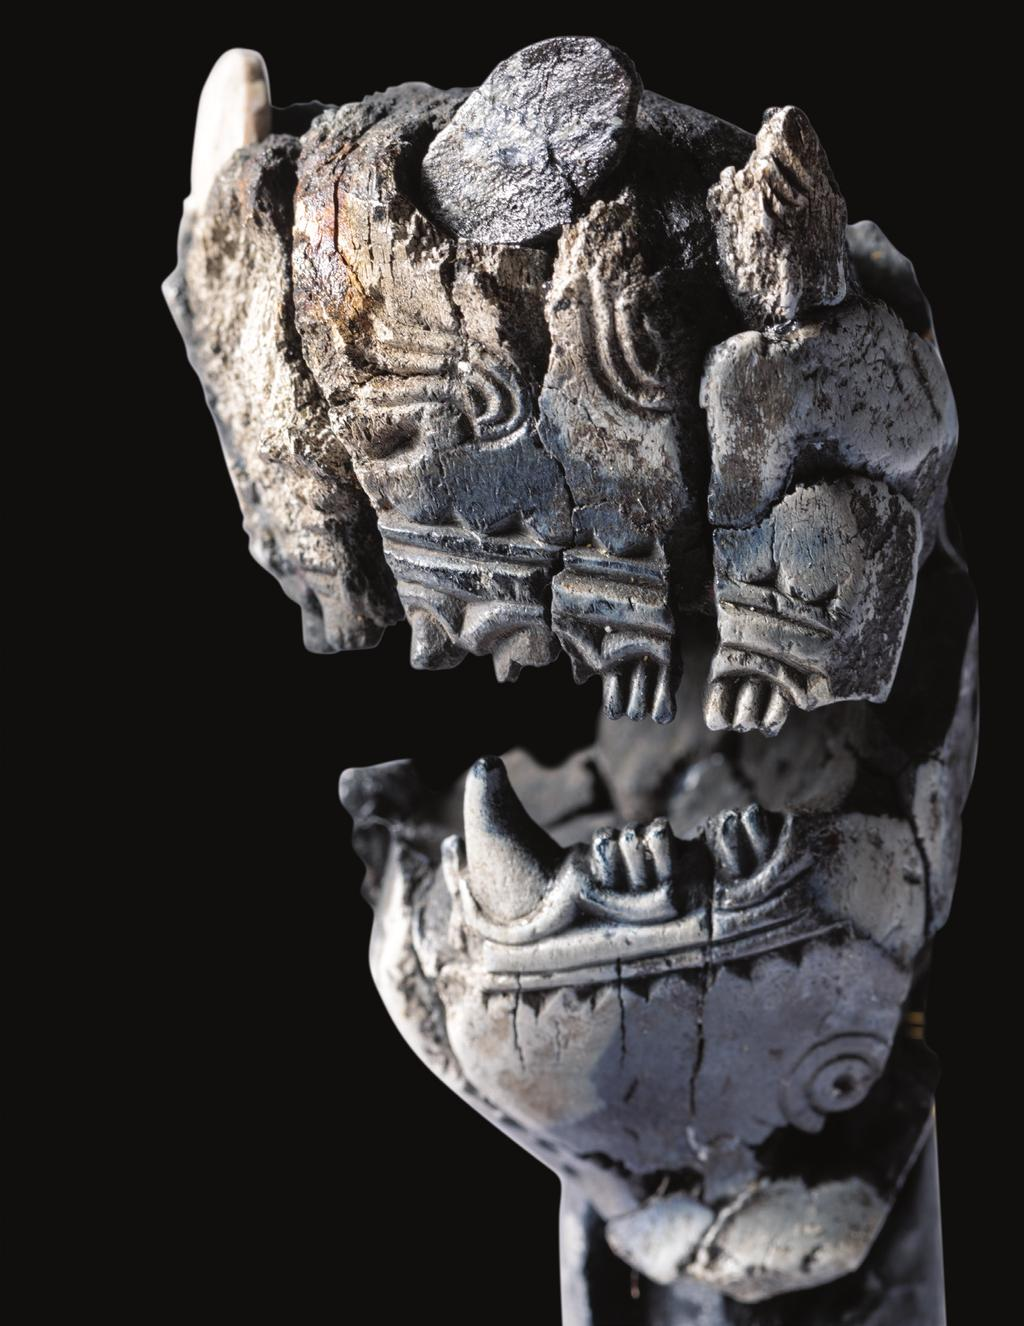 This figure head, found in a female grave from the 10th century, was